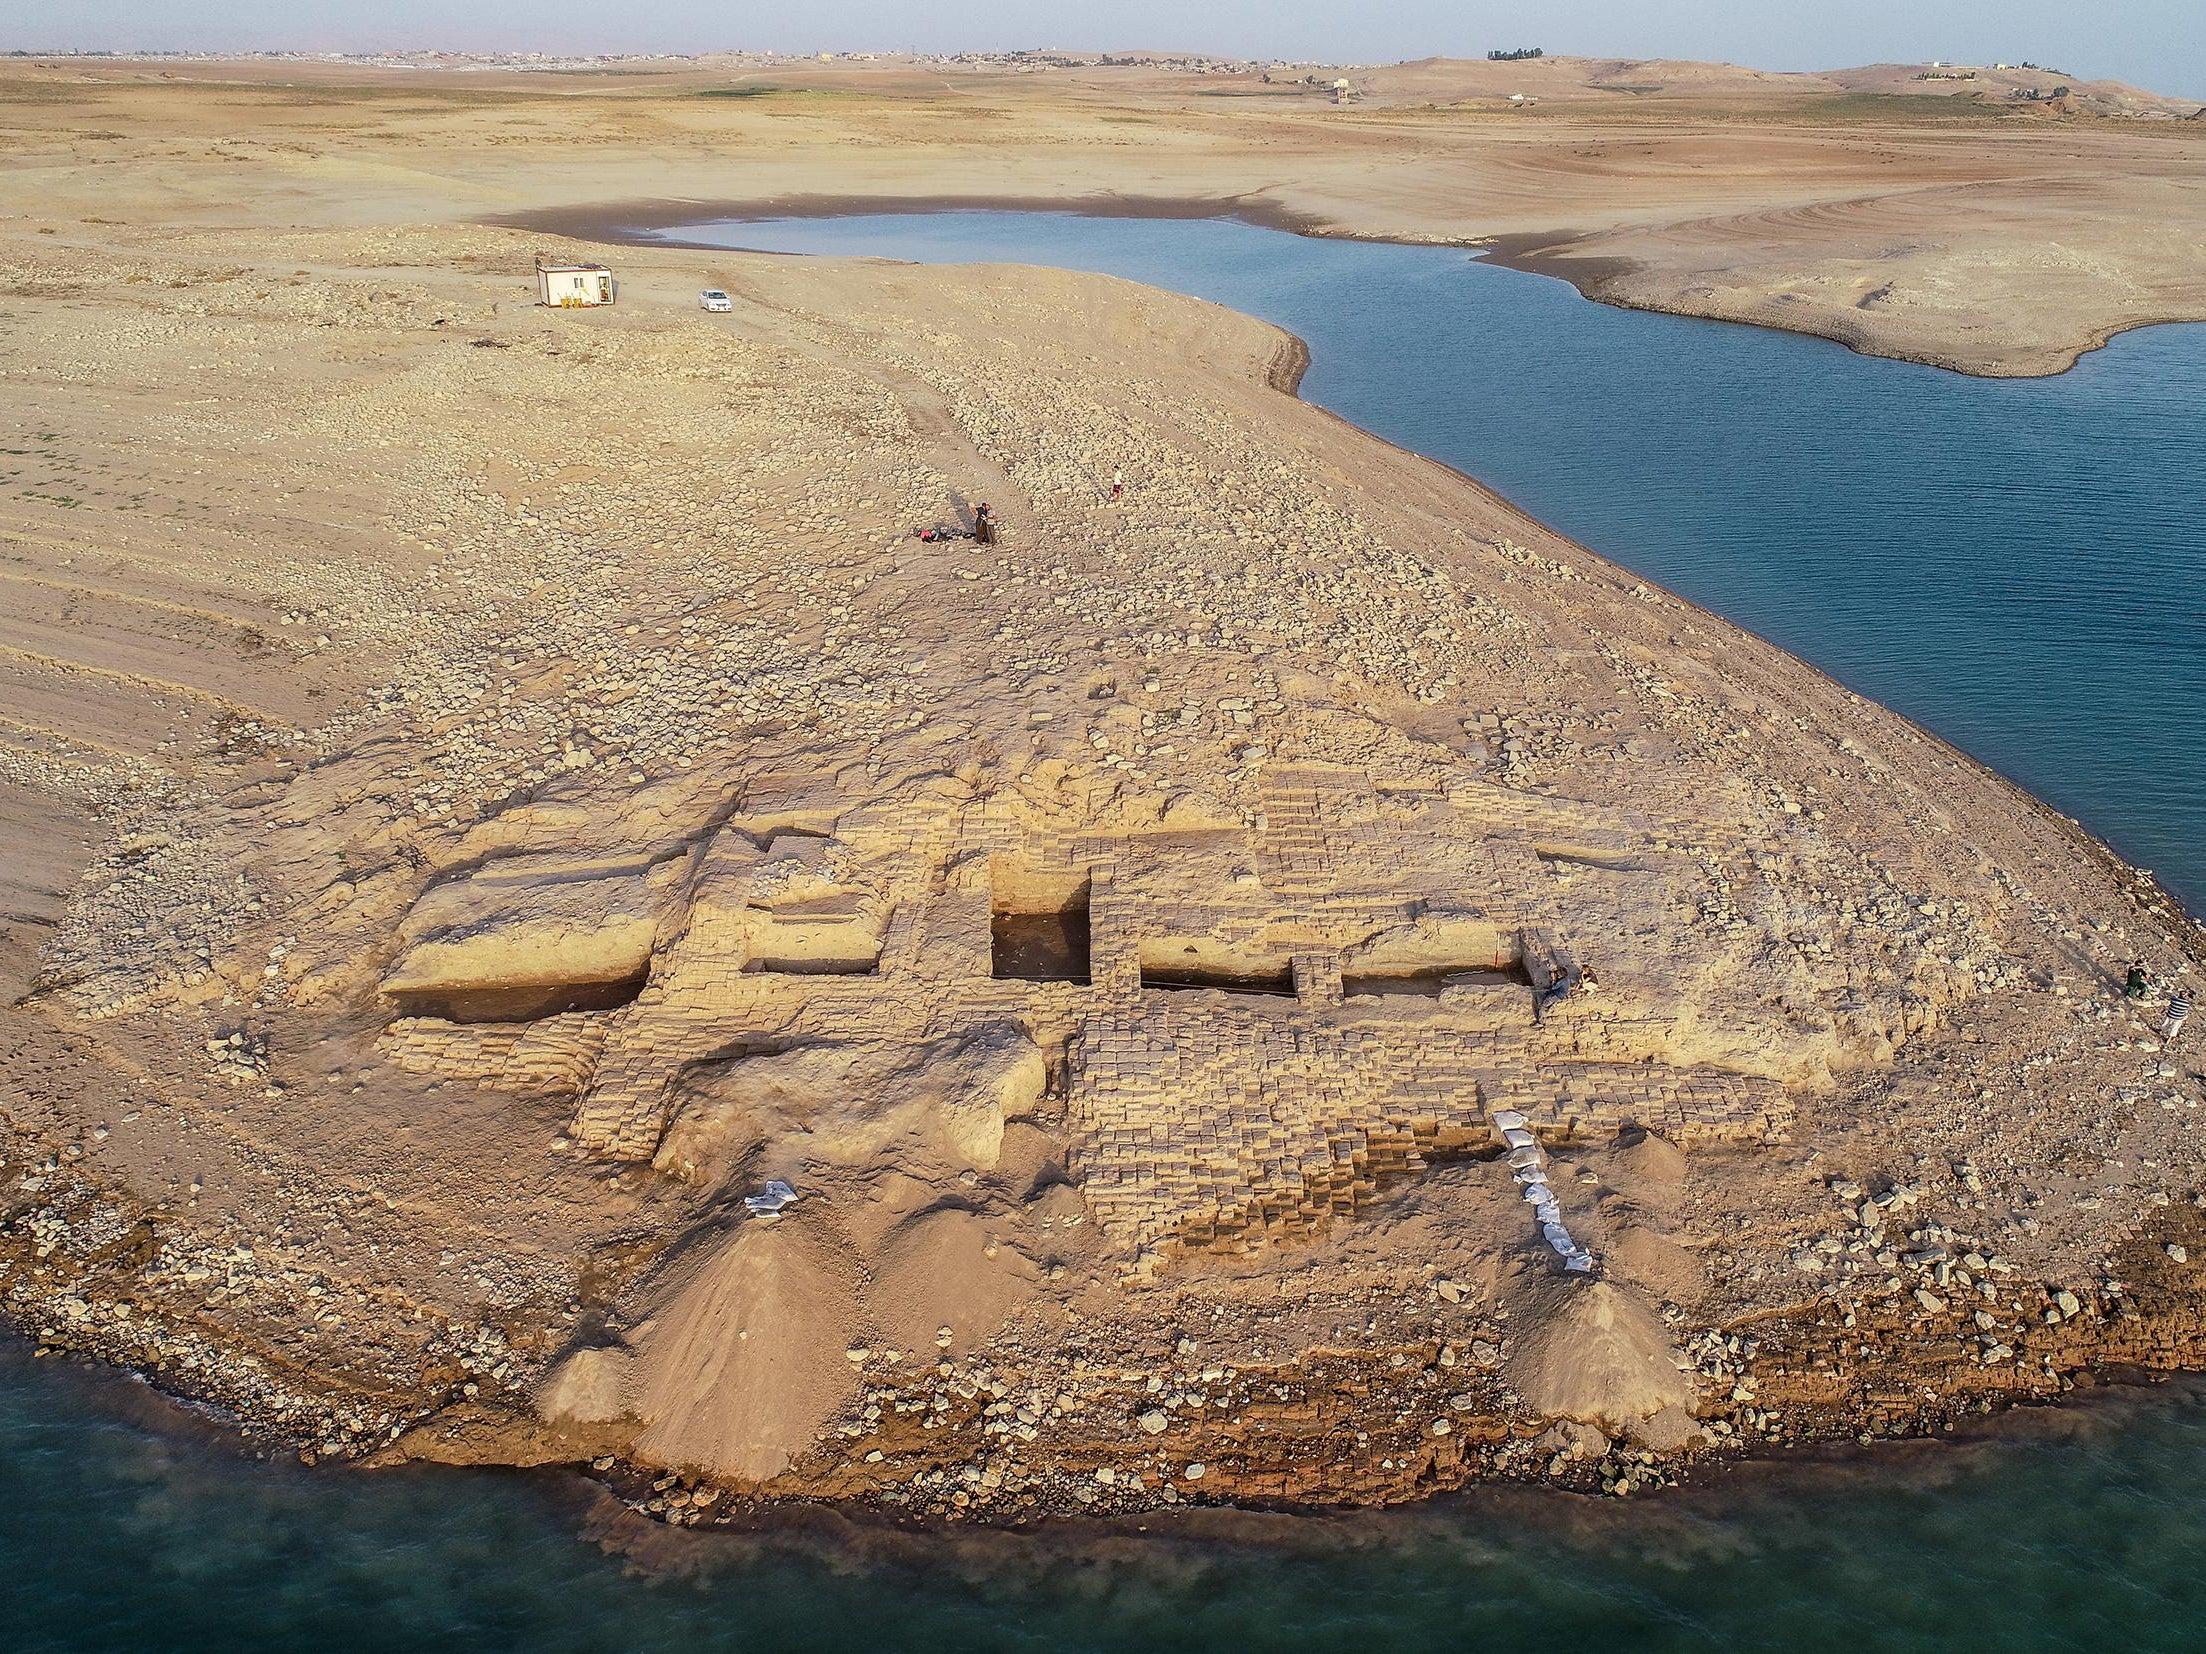 Ancient palace revealed after drought drains water from Iraq reservoir